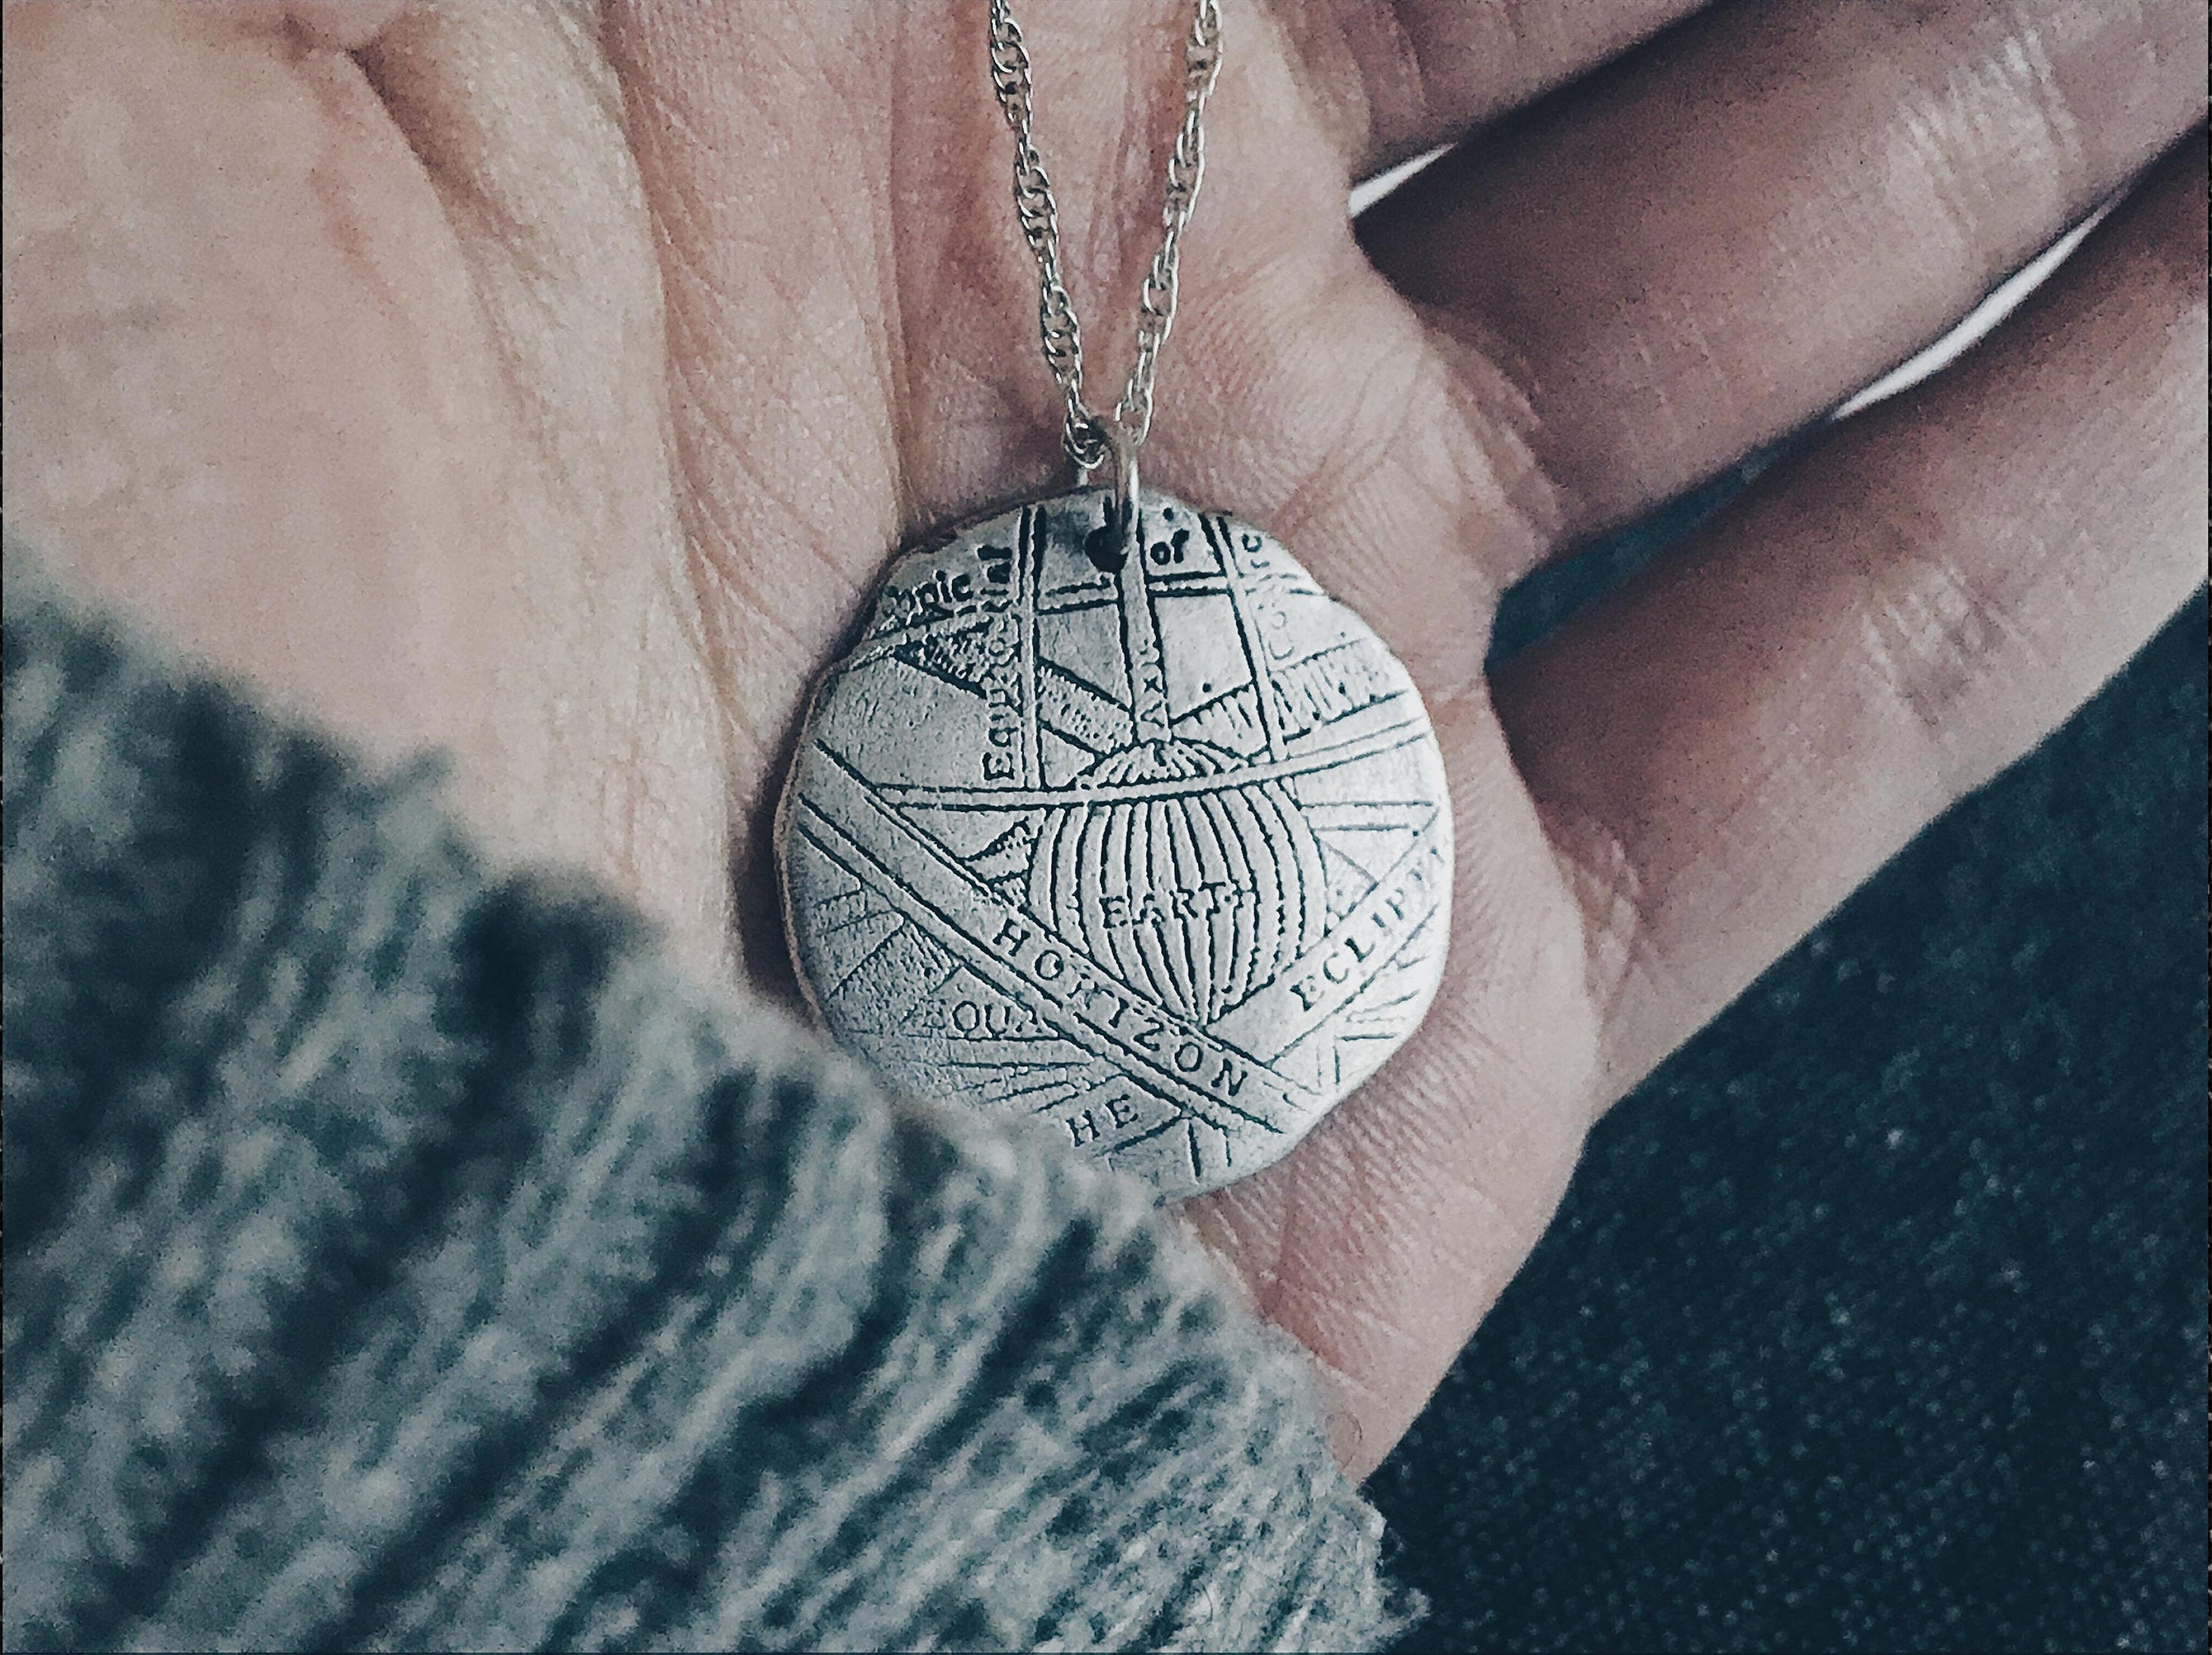 Sterling Silver Astronomical Medallion Necklace - Distressed Astrolabe Pendant - Men's / Women's Outer Space Jewelry